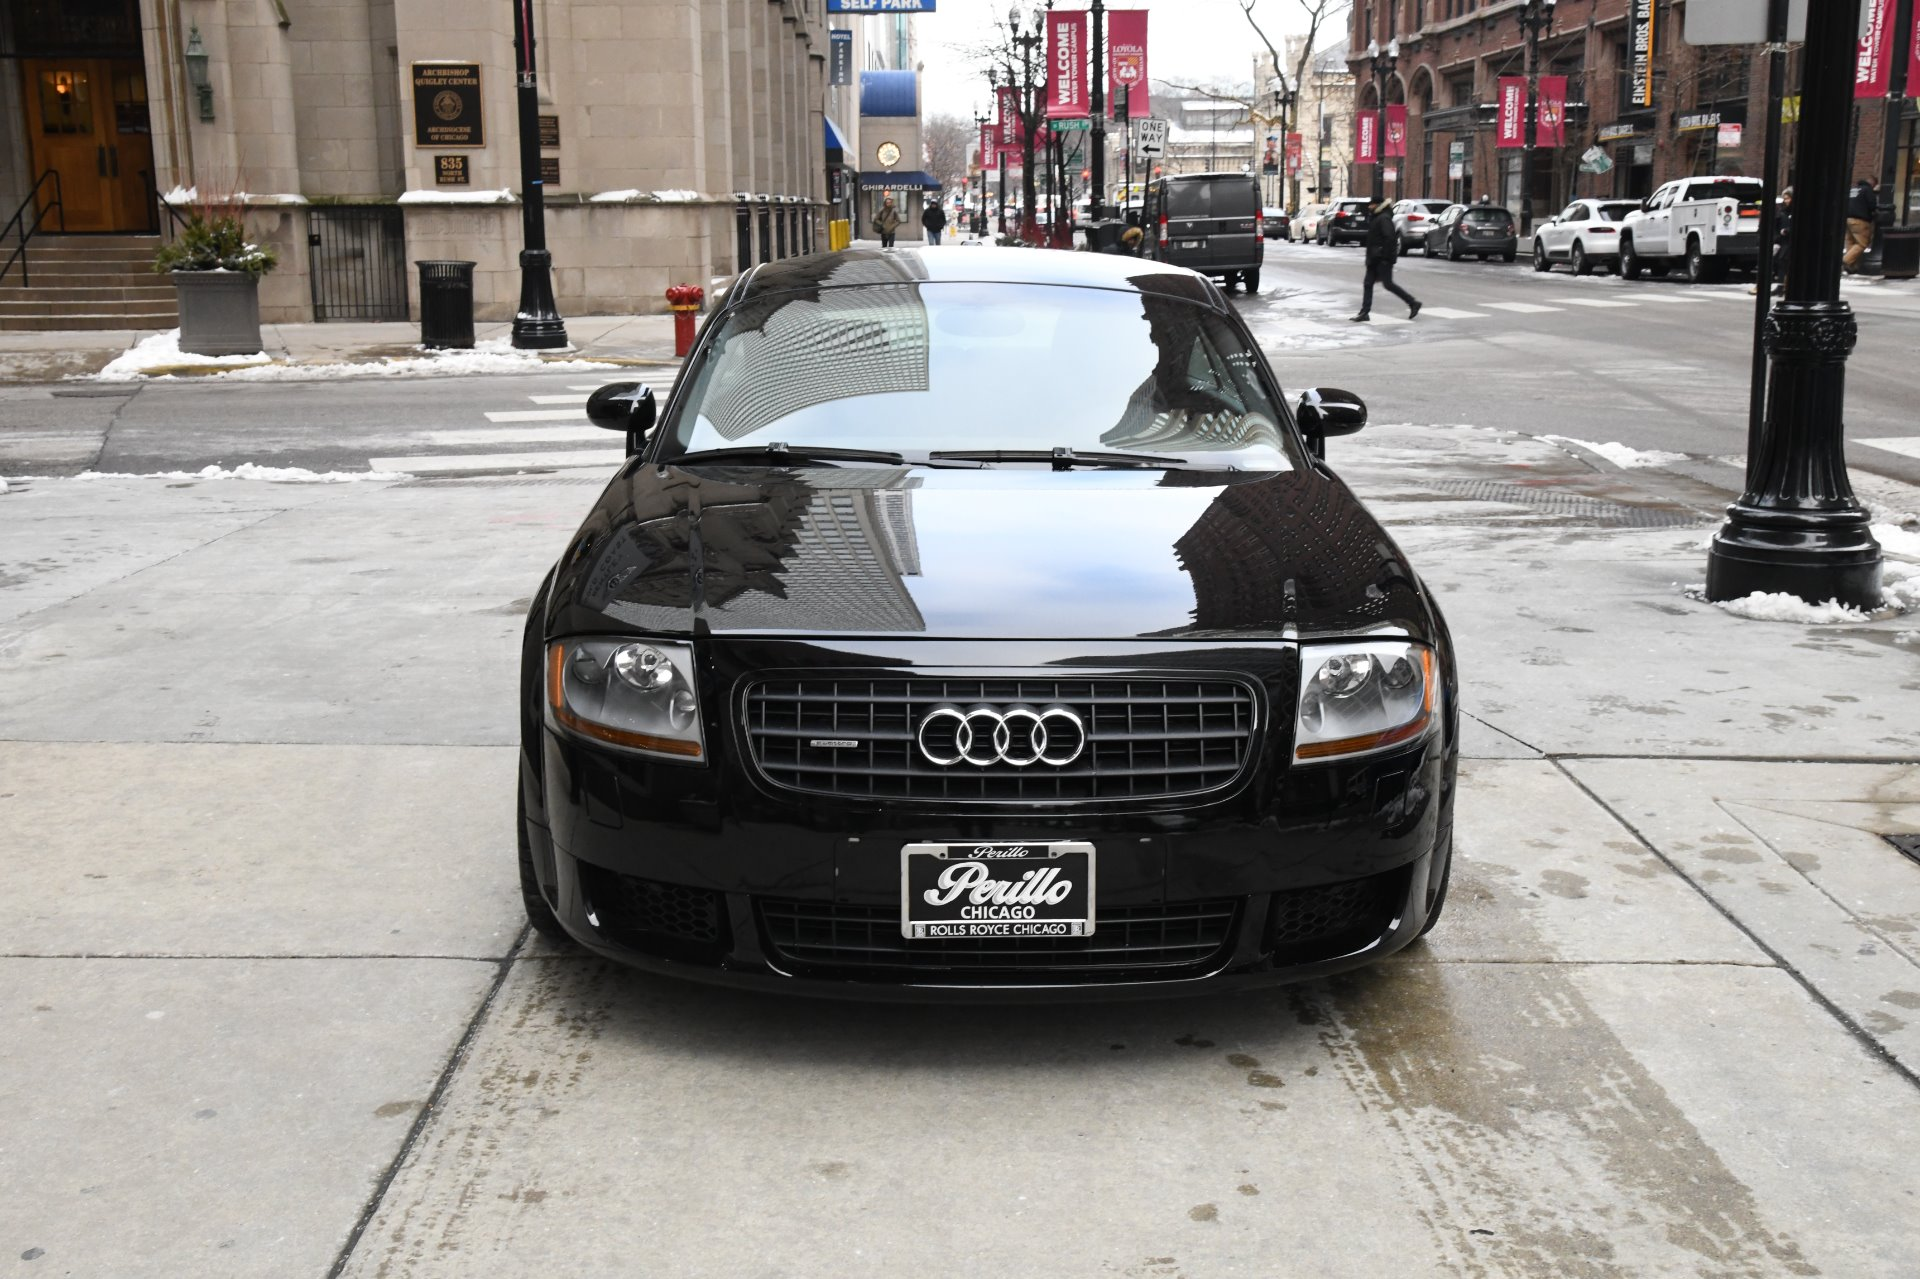 Used 2005 Audi TT HPA Built 425HP quattro | Chicago, IL